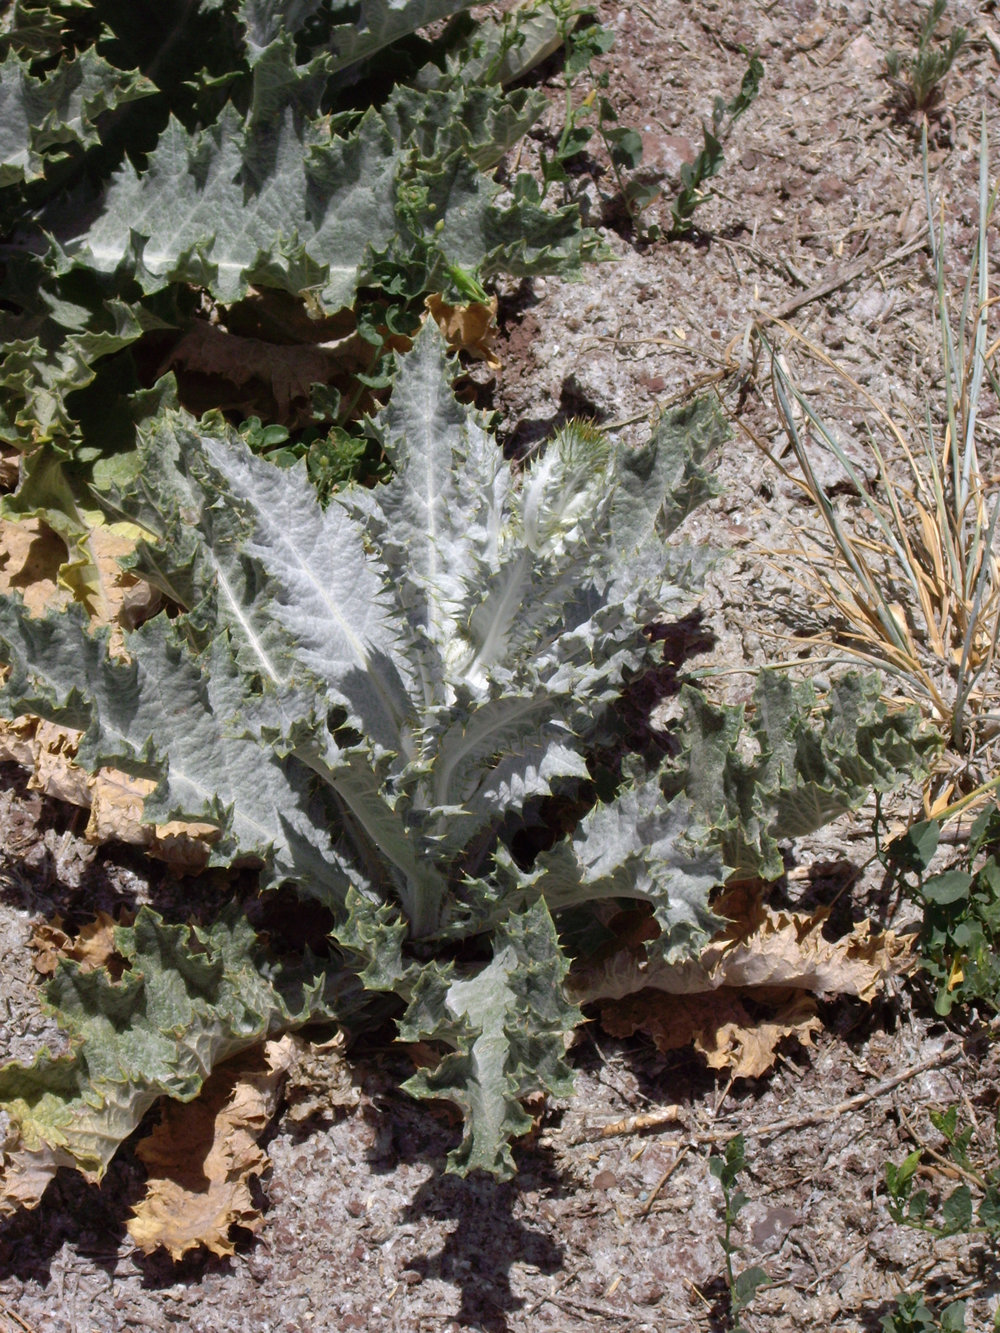 Scotch thistle basal rosette